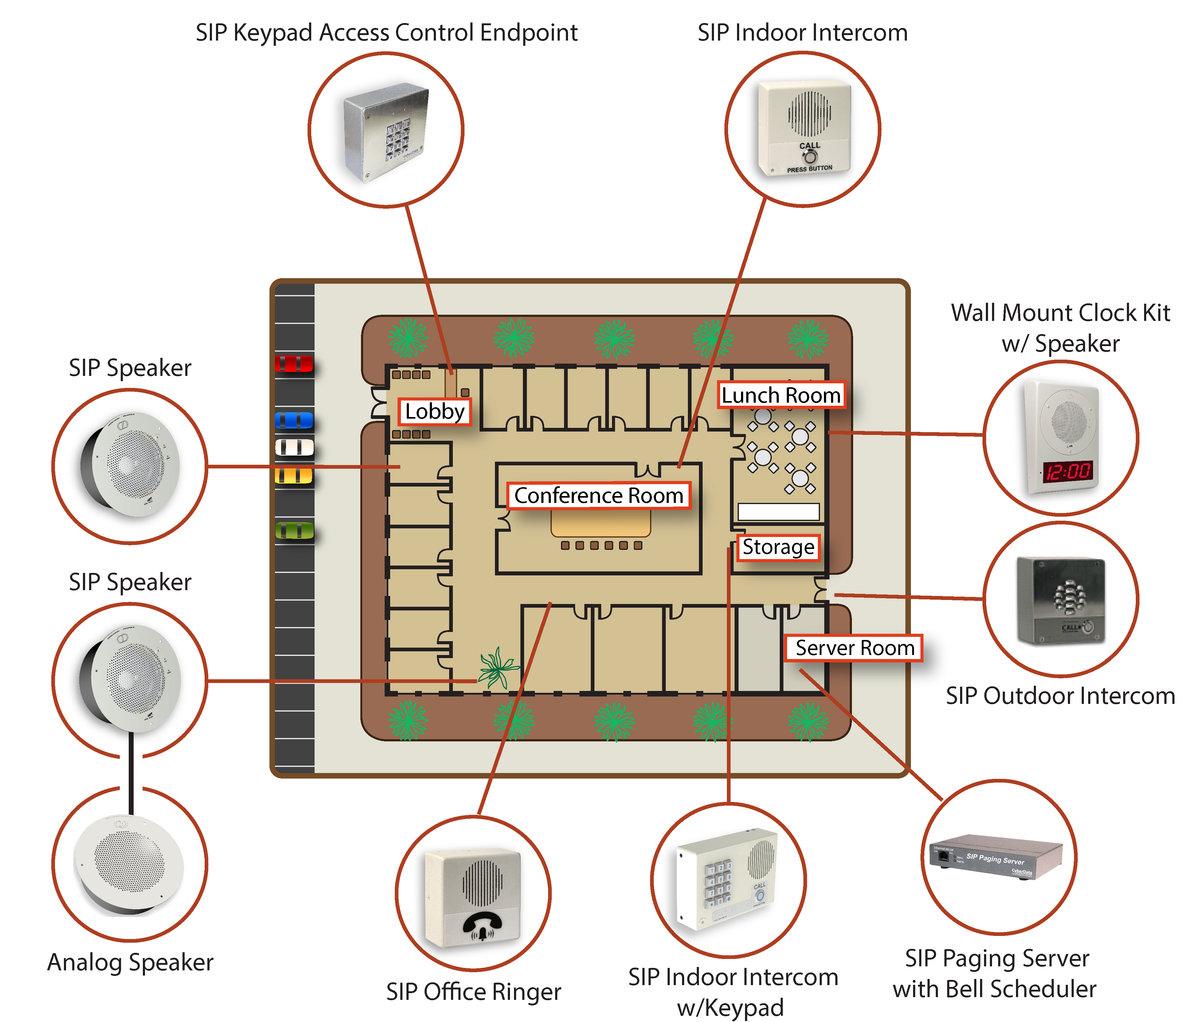 Implementation Solutions Cyberdata Corporation Office Phone System Wiring Diagram Recently Relocated To A New Building The Company Requires Both Overhead Paging For General Announcements And Two Way Communication Devices With